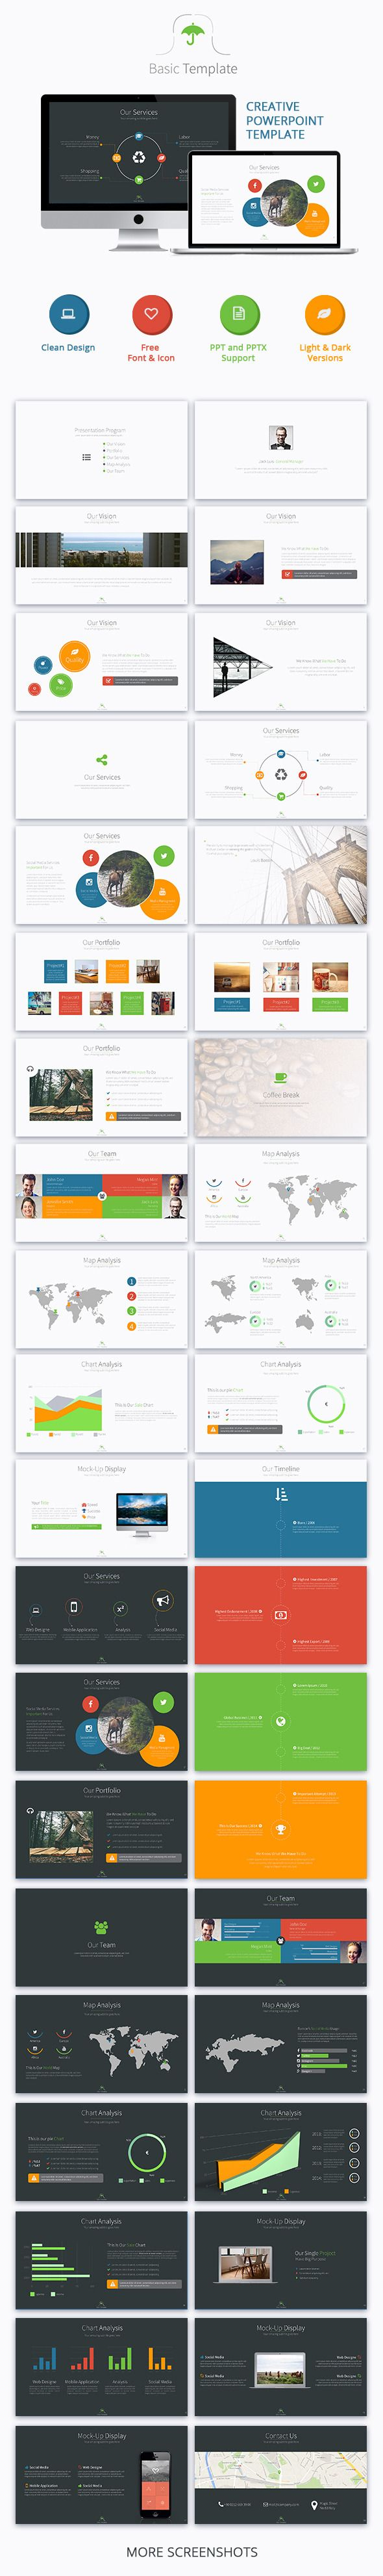 Basic Powerpoint Template #presentation #design Download: http://graphicriver.net/item/basic-powerpoint-template/10870290?ref=ksioks